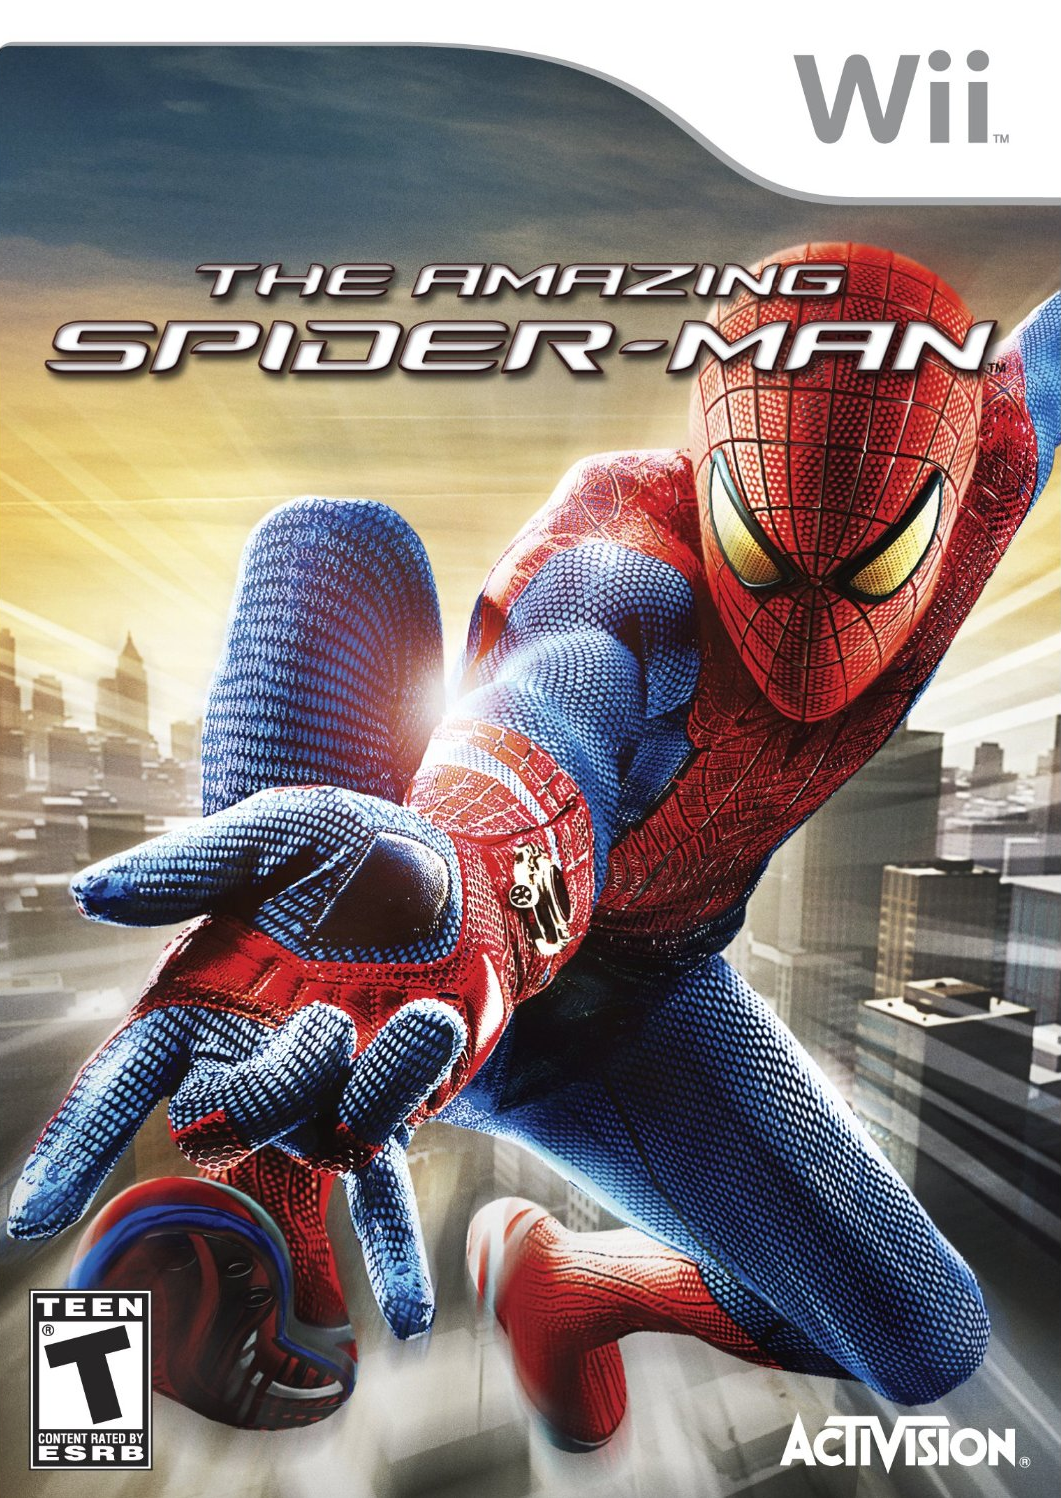 The Amazing Spider-Man - Wii game 1.png